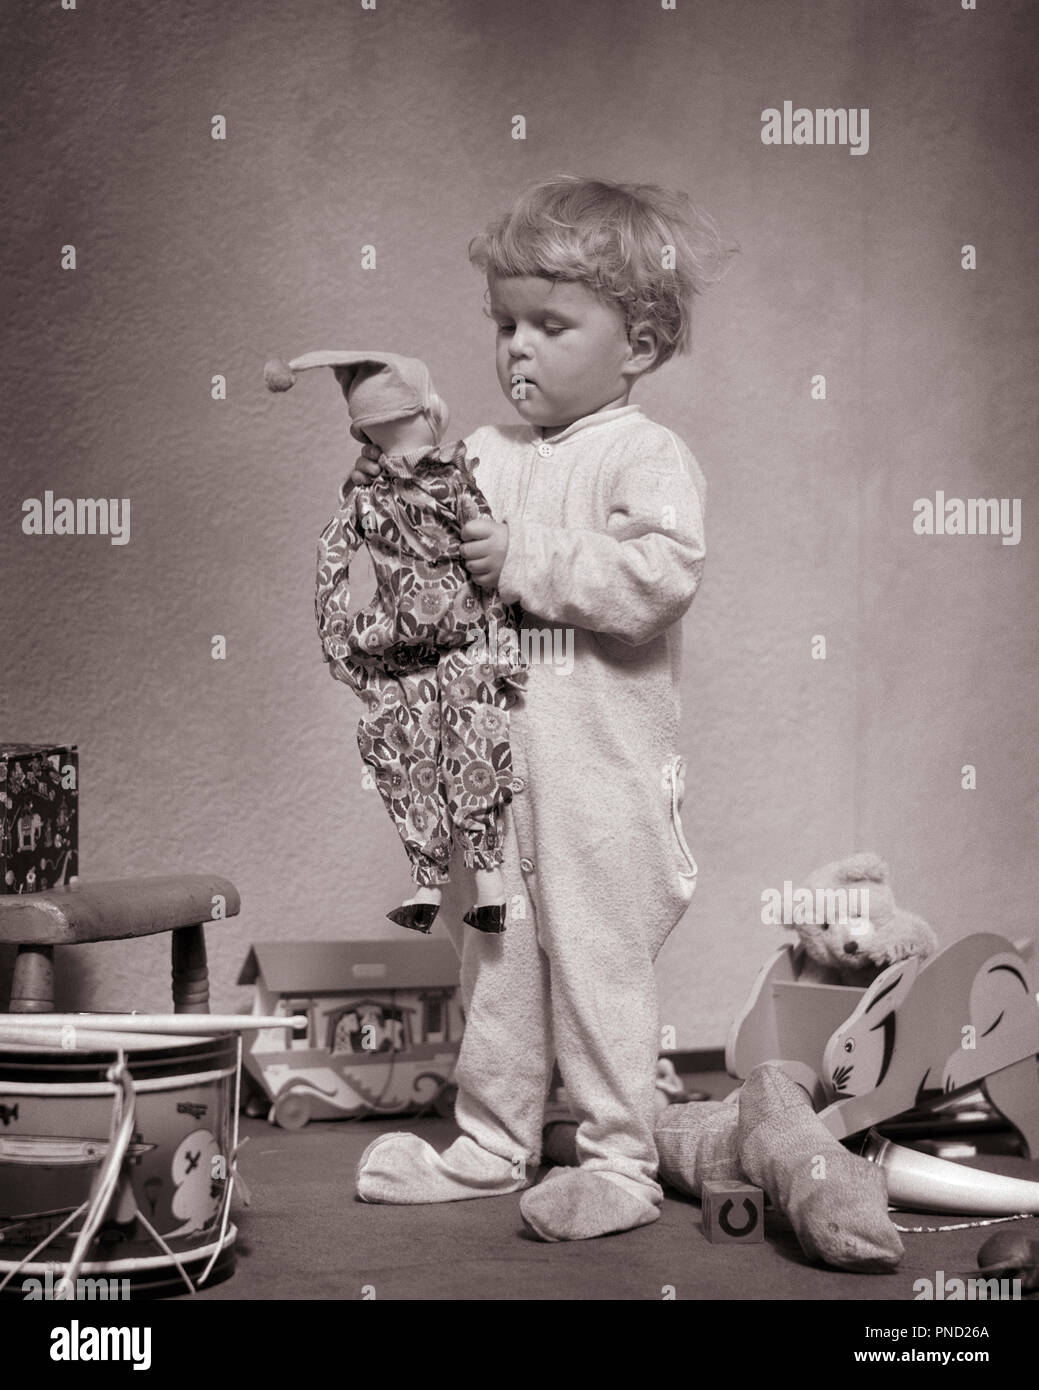 1930s YOUNG BLOND BABY BOY STANDING WEARING WOOL SOCK FOOTED DR